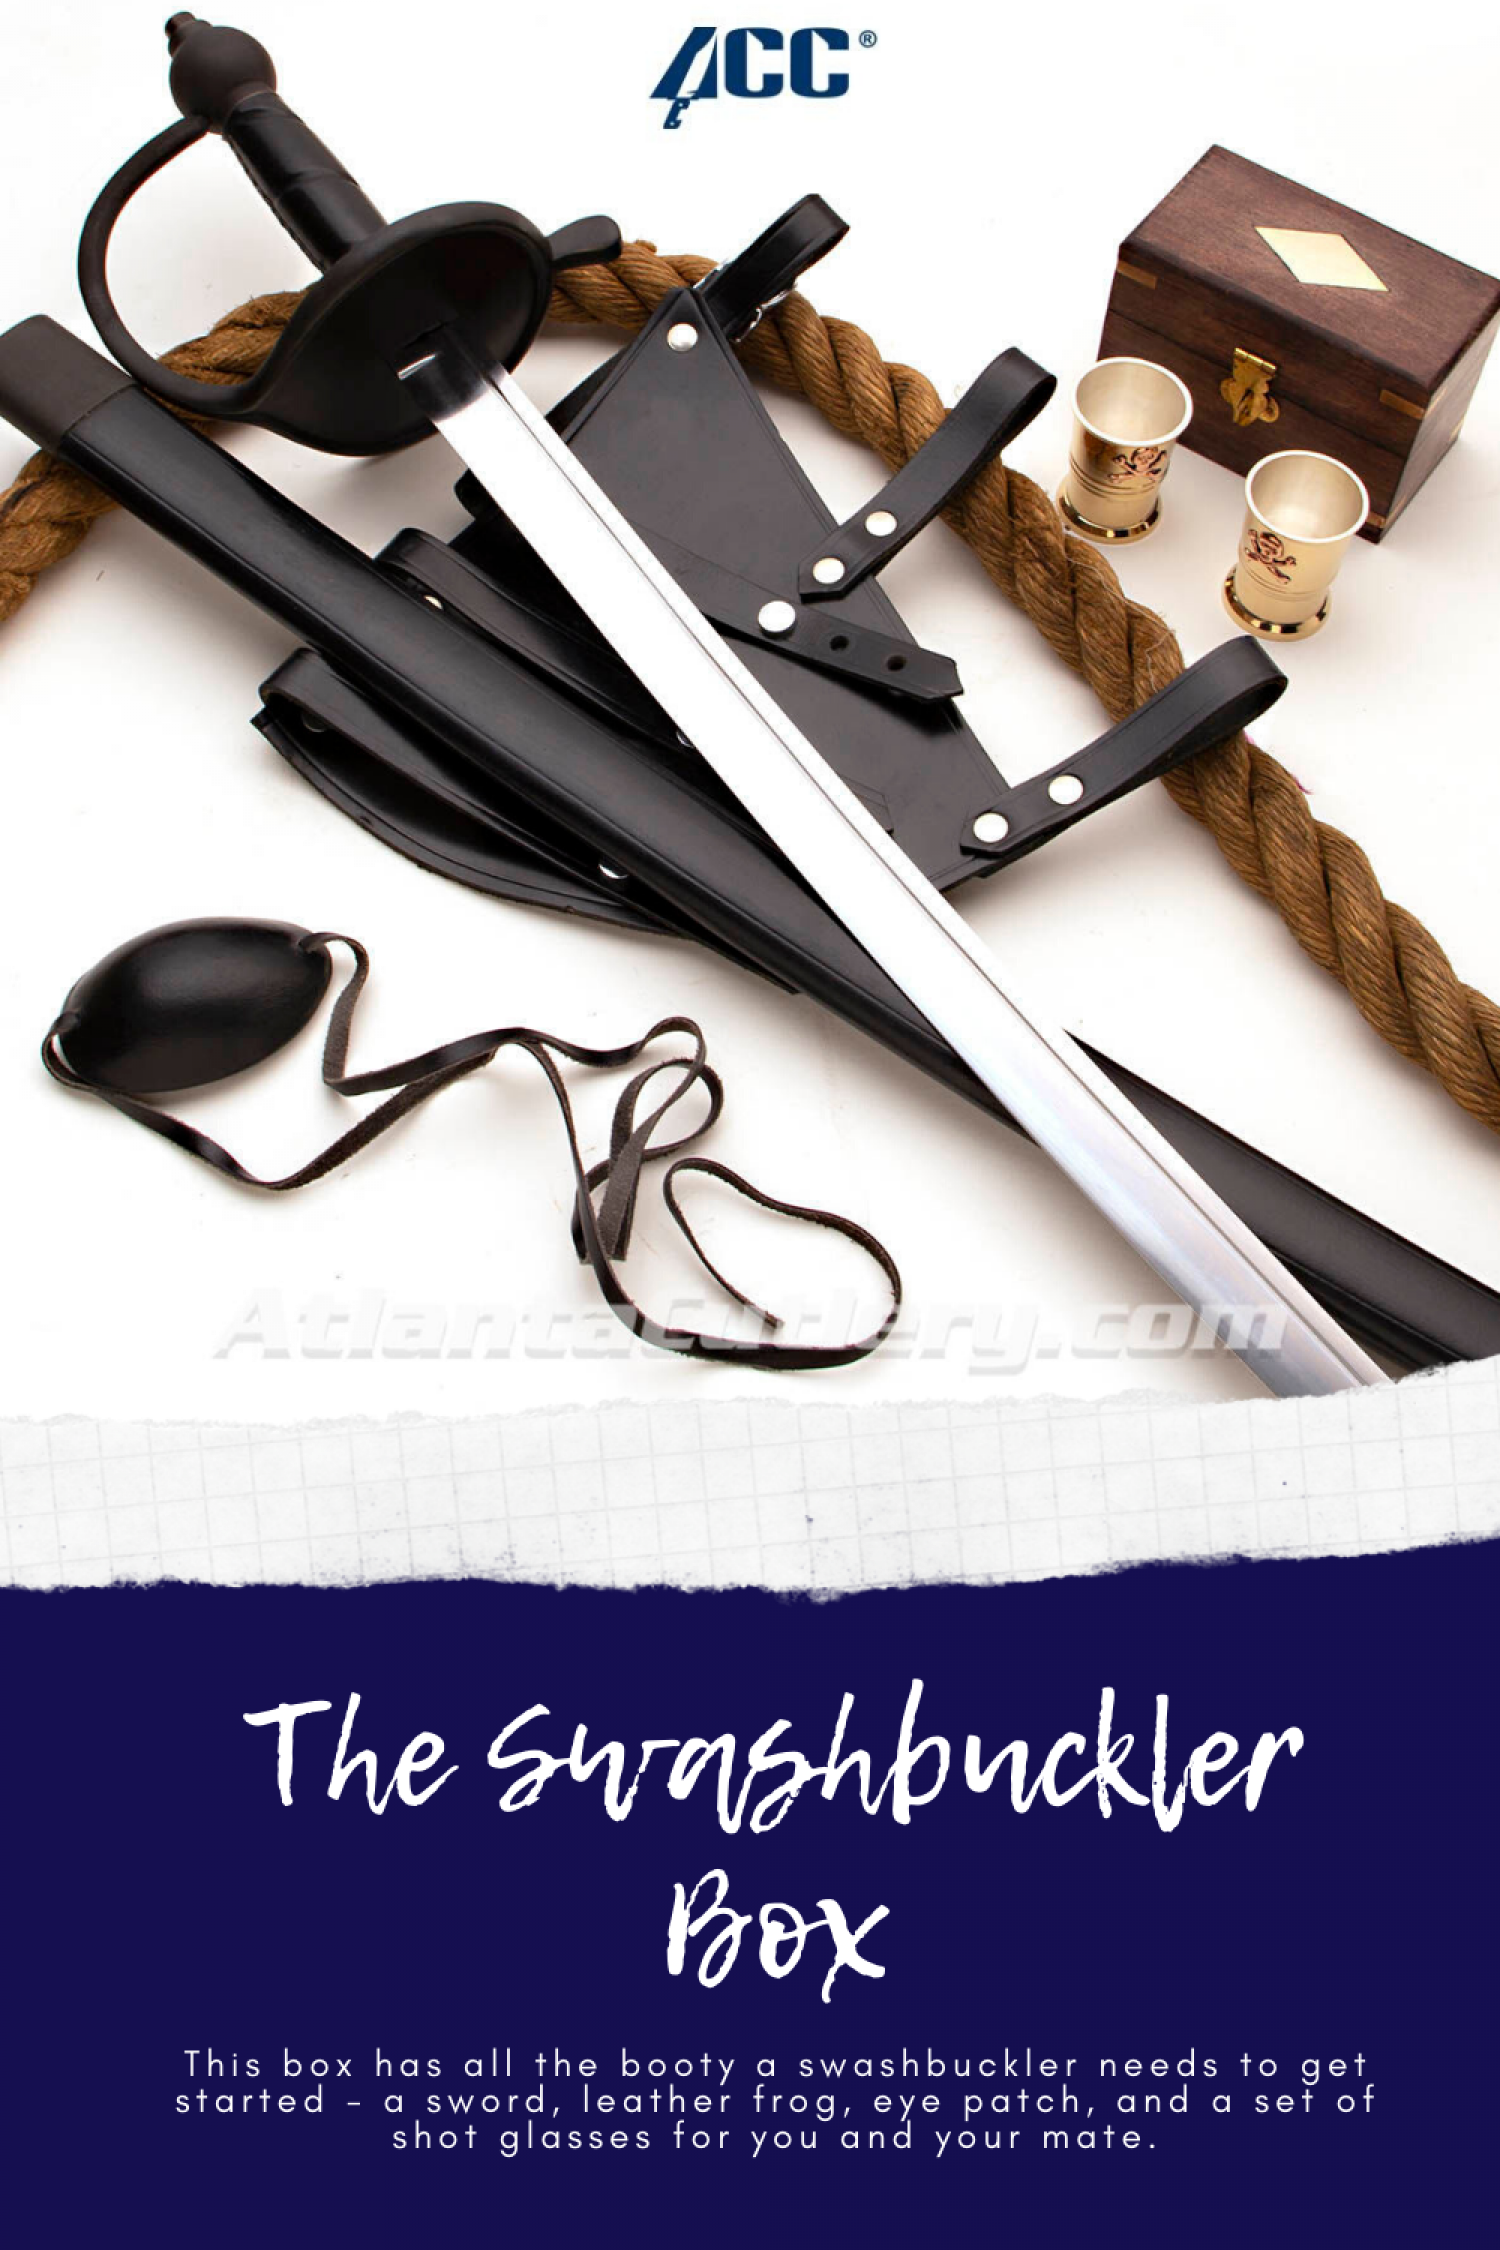 The Swashbuckler Box Infographic